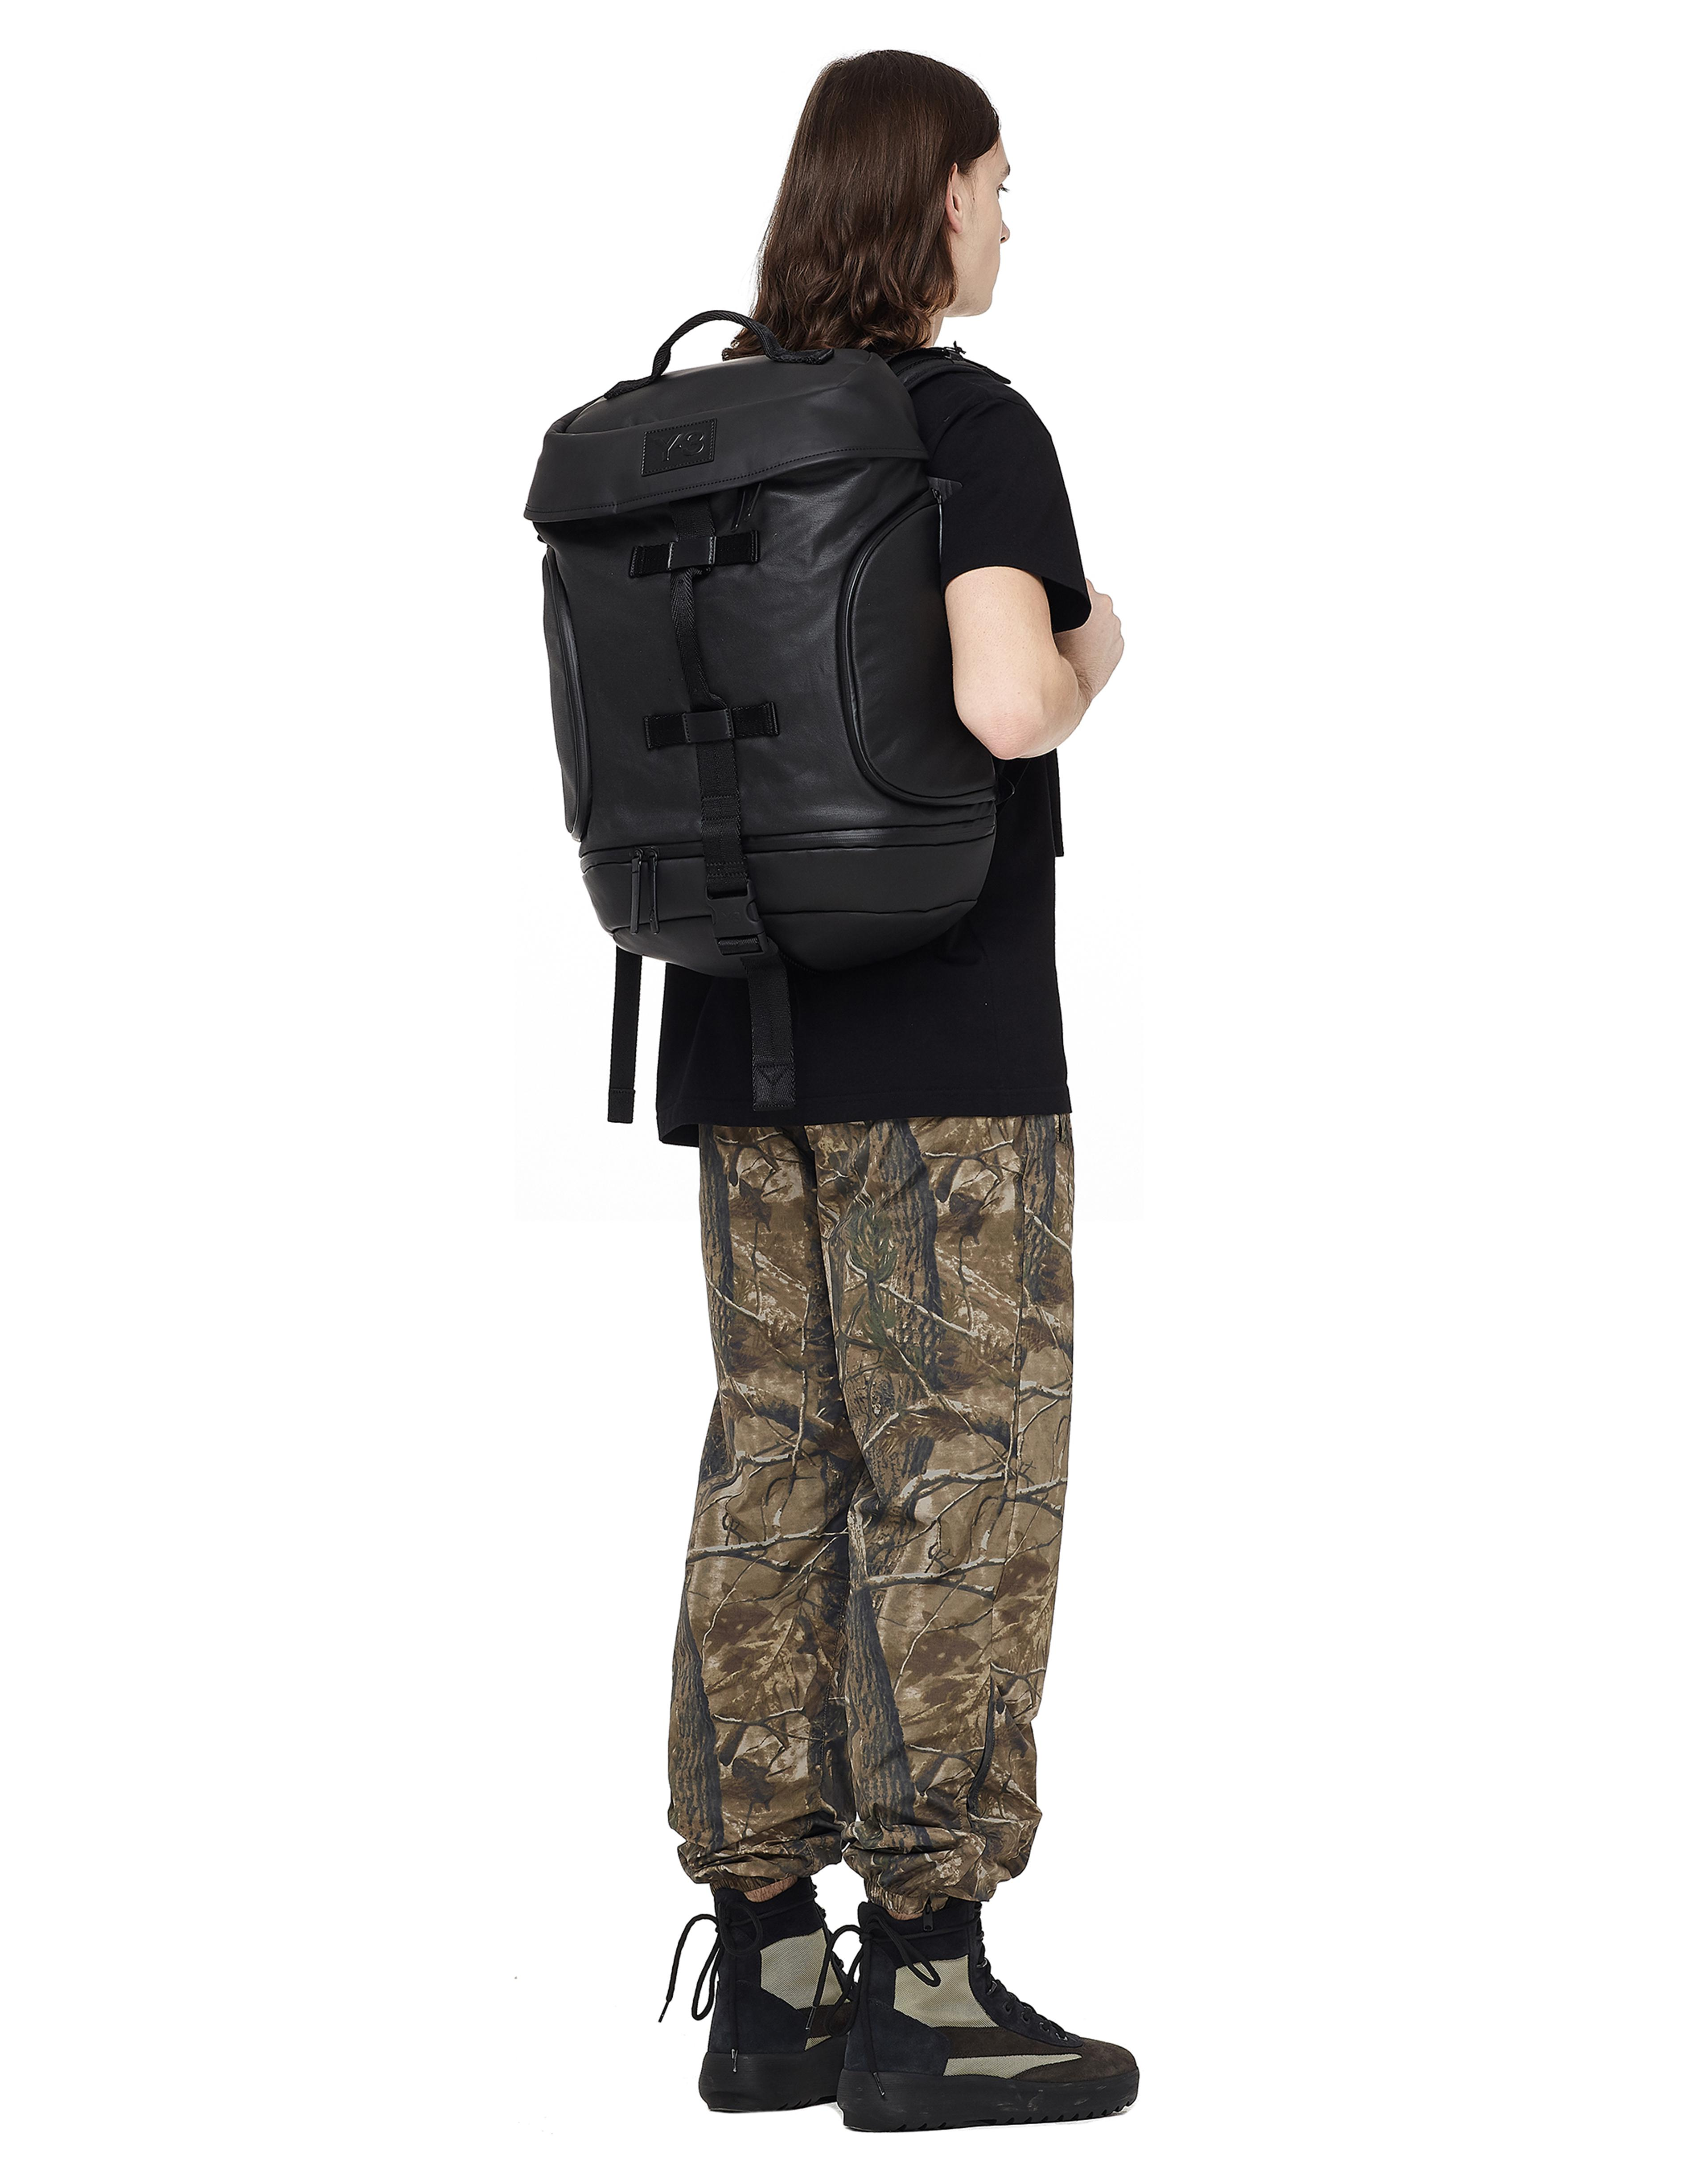 Lyst - Y-3 Icon Textile Backpack in Black 9984724a63743